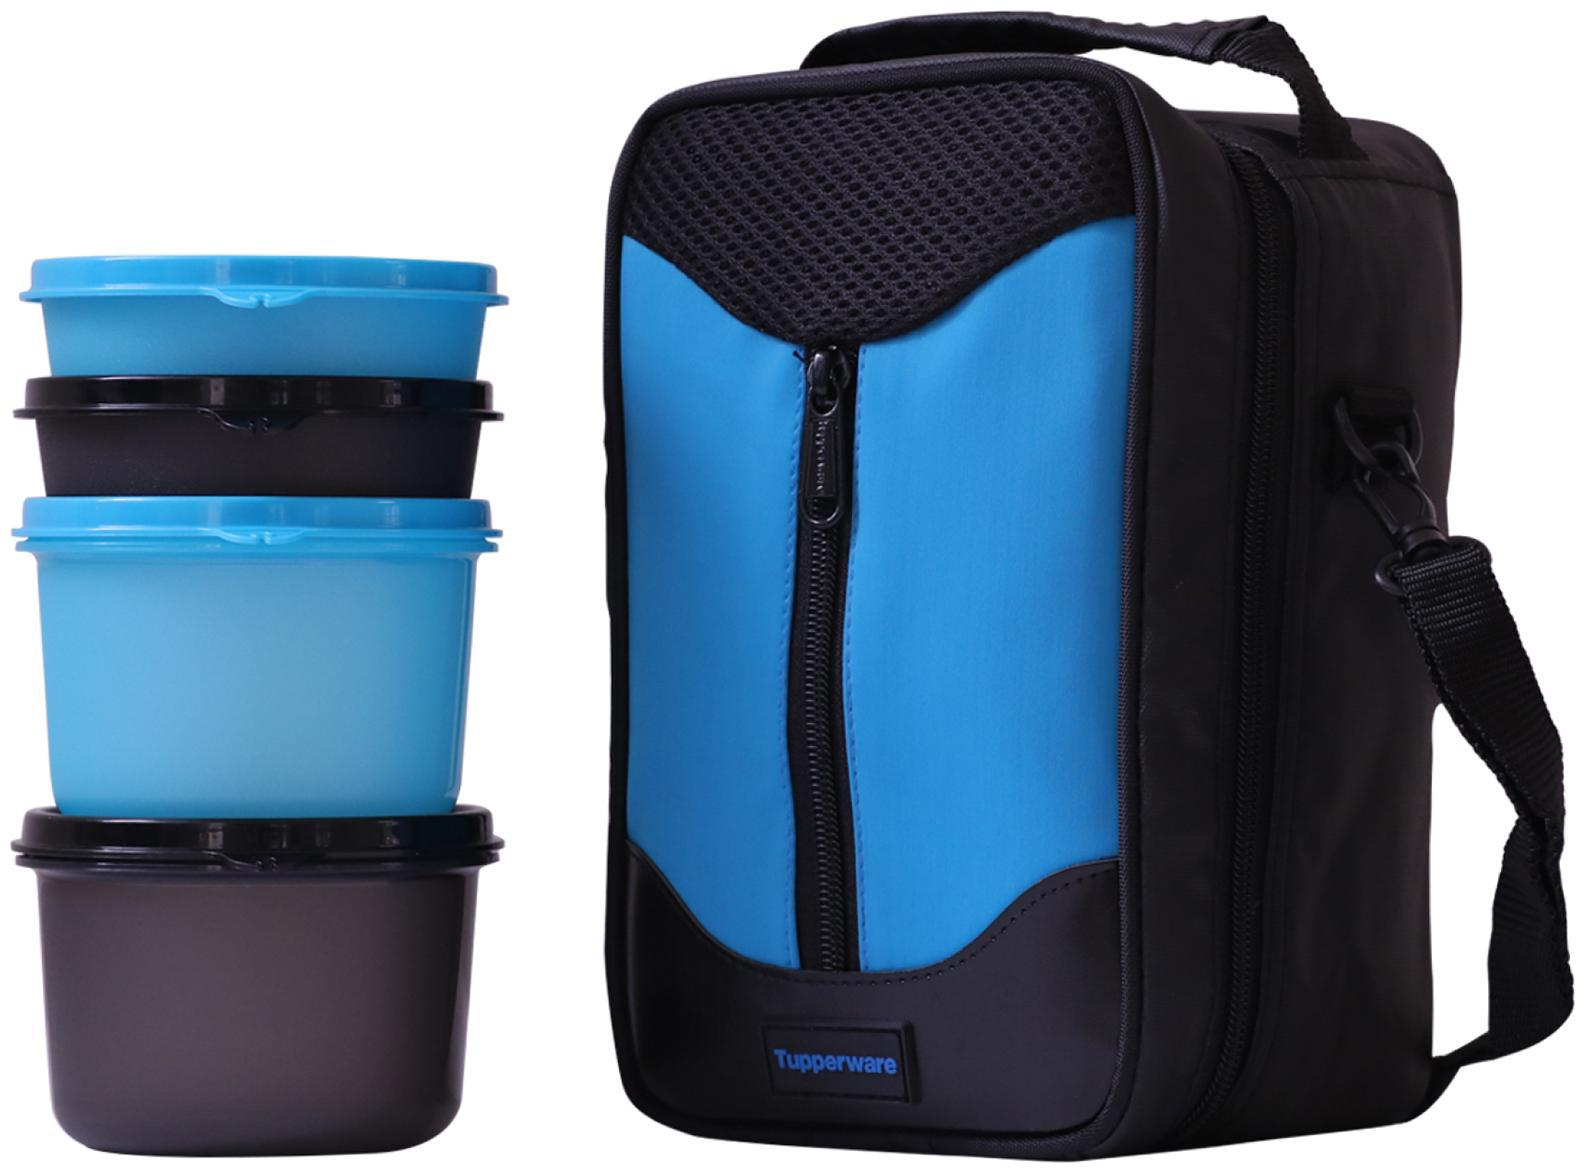 Tupperware New Executive Office Lunch Box Set With Pouch;1220 ml 1pc by Tupperware Distributor Crescent PS